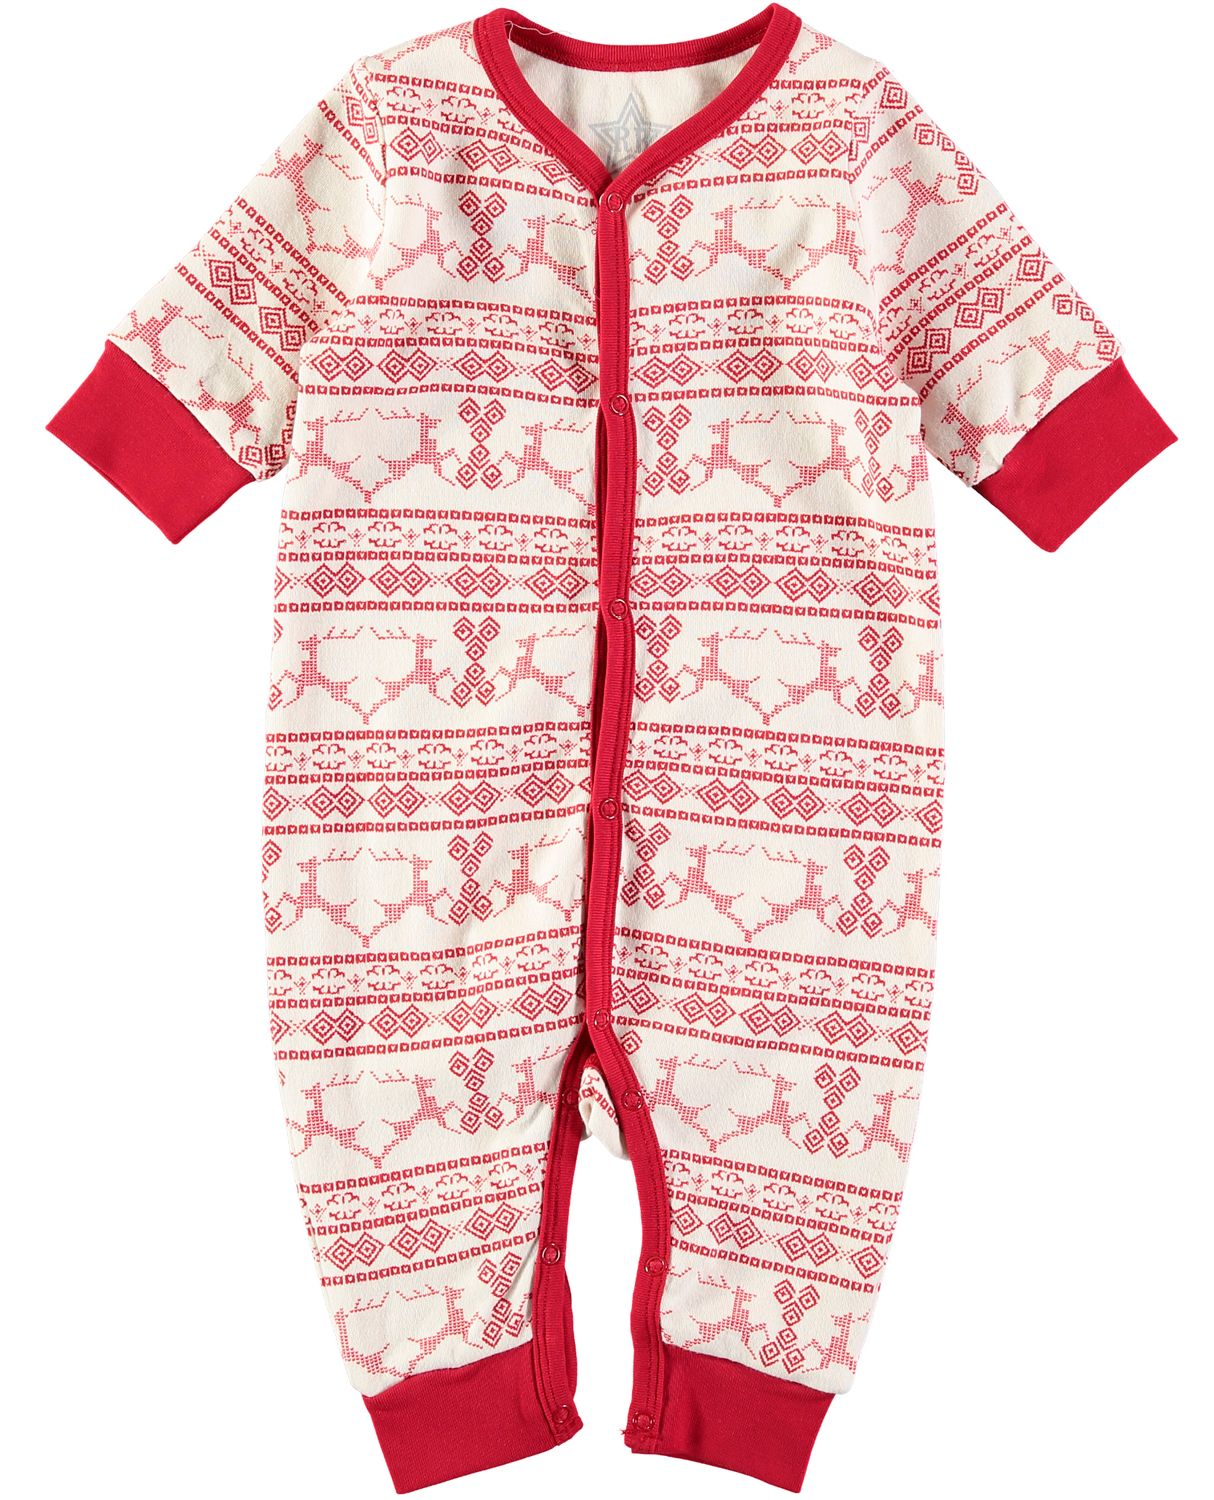 Rockin' Baby Rockin' Baby Christmas Fairisle Footless All-in-One, Cream